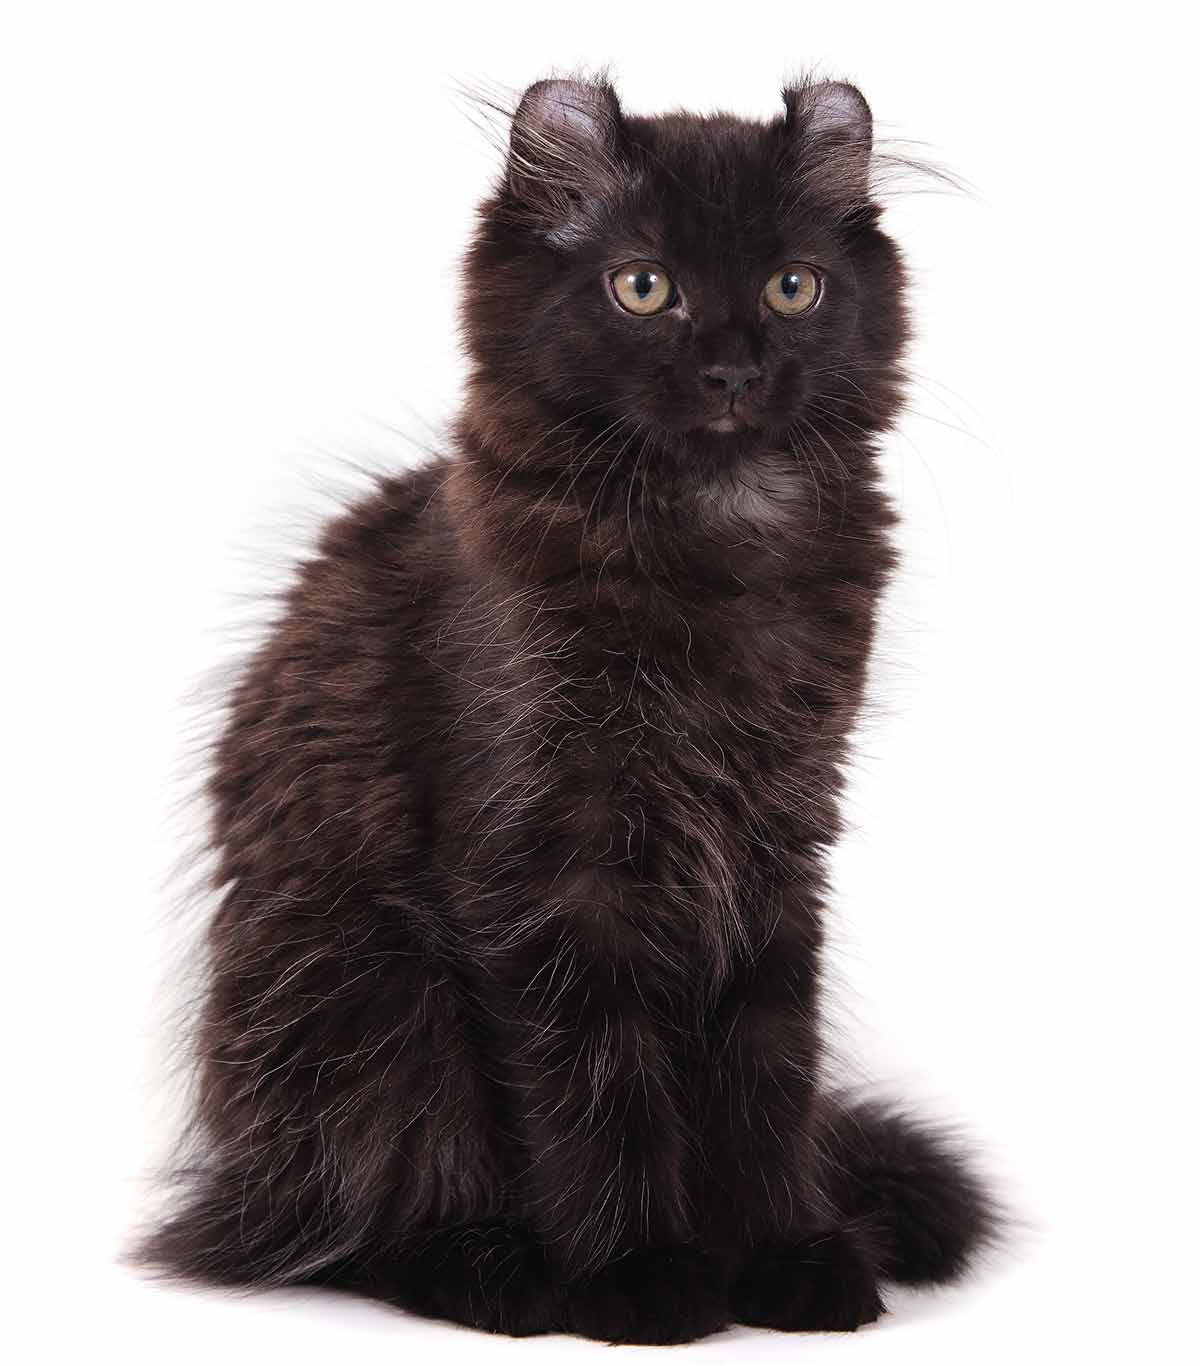 Black Cat Breeds Which Ones Make The Best Pets